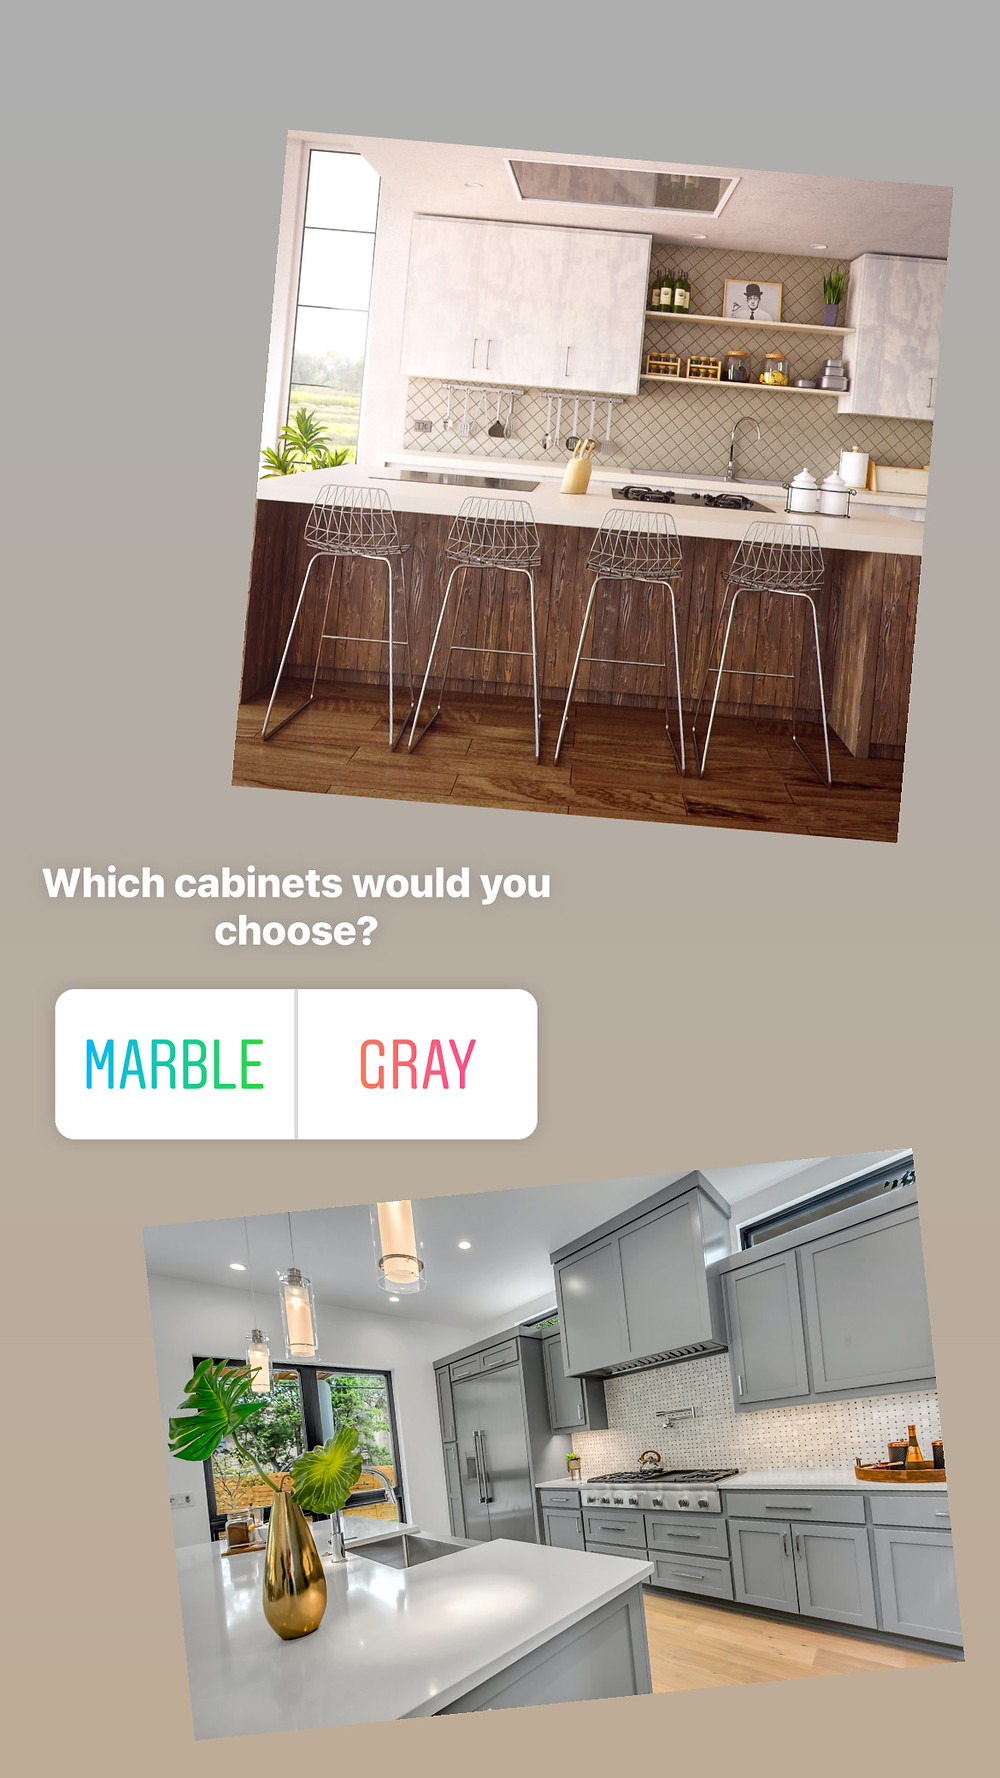 Instagram story poll example for real estate agents with a question about kitchen cabinets